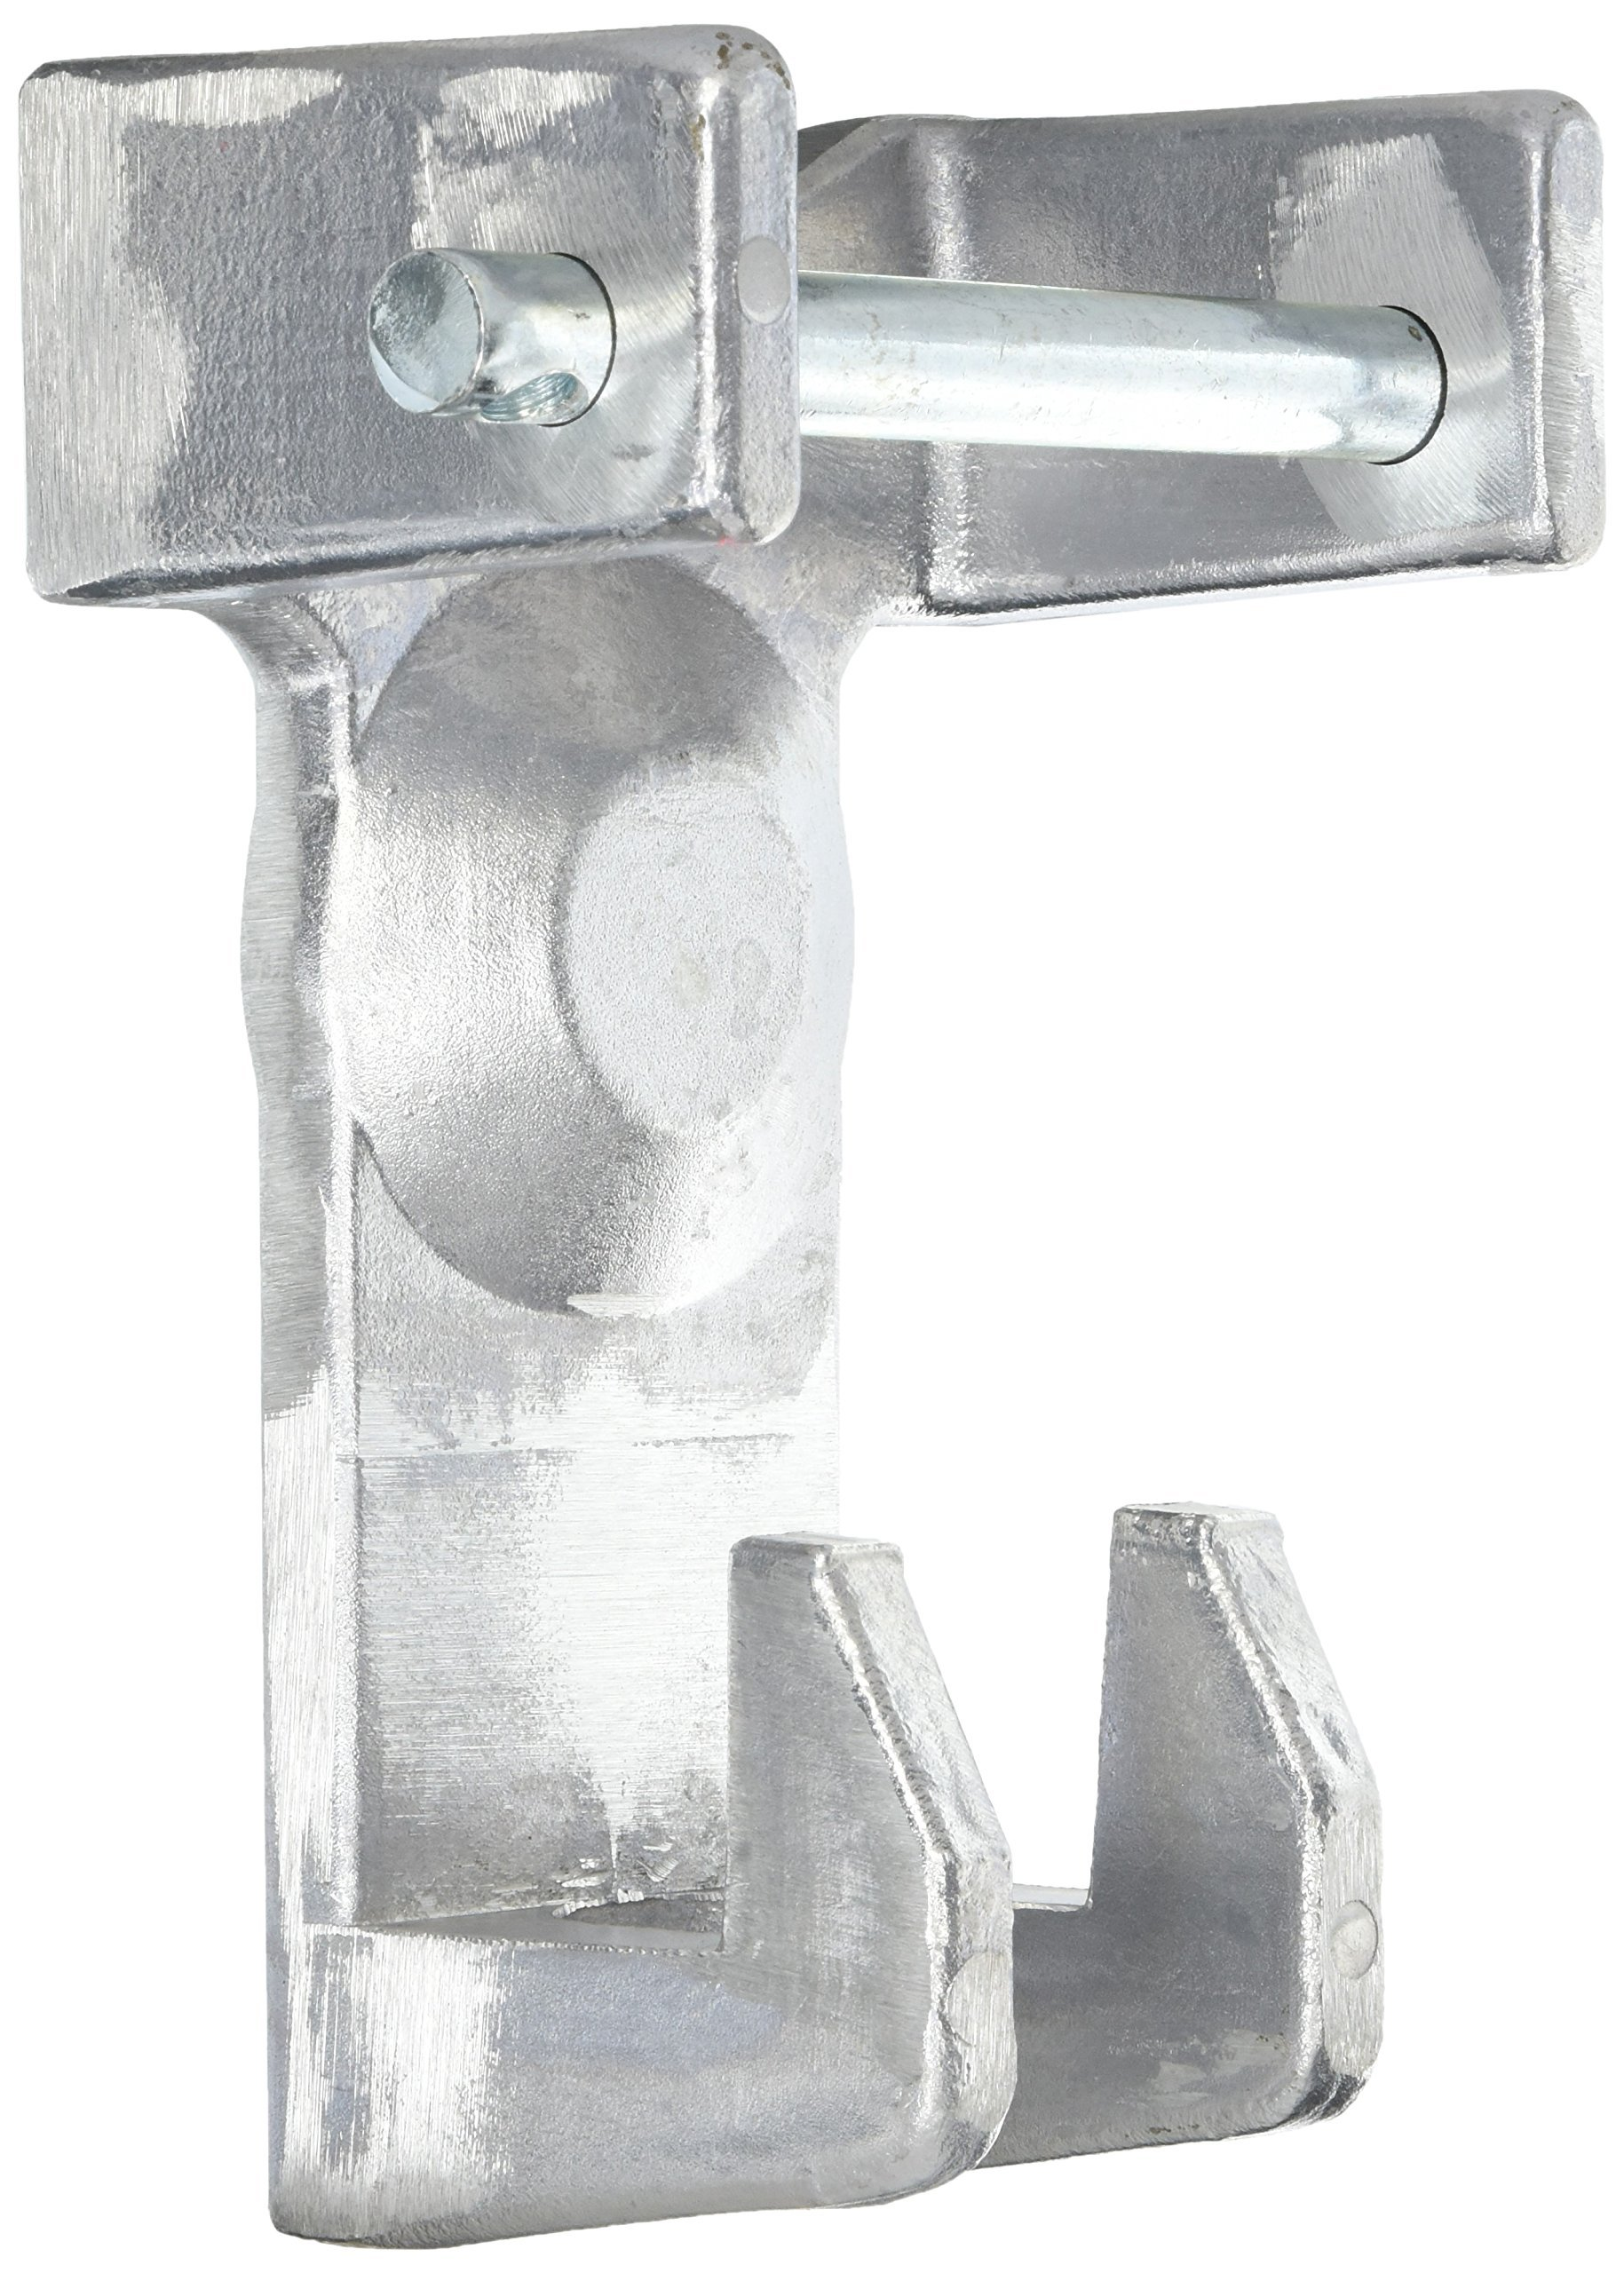 Blaylock American Metal TL-55 Coupler Lock by Blaylock American Metal